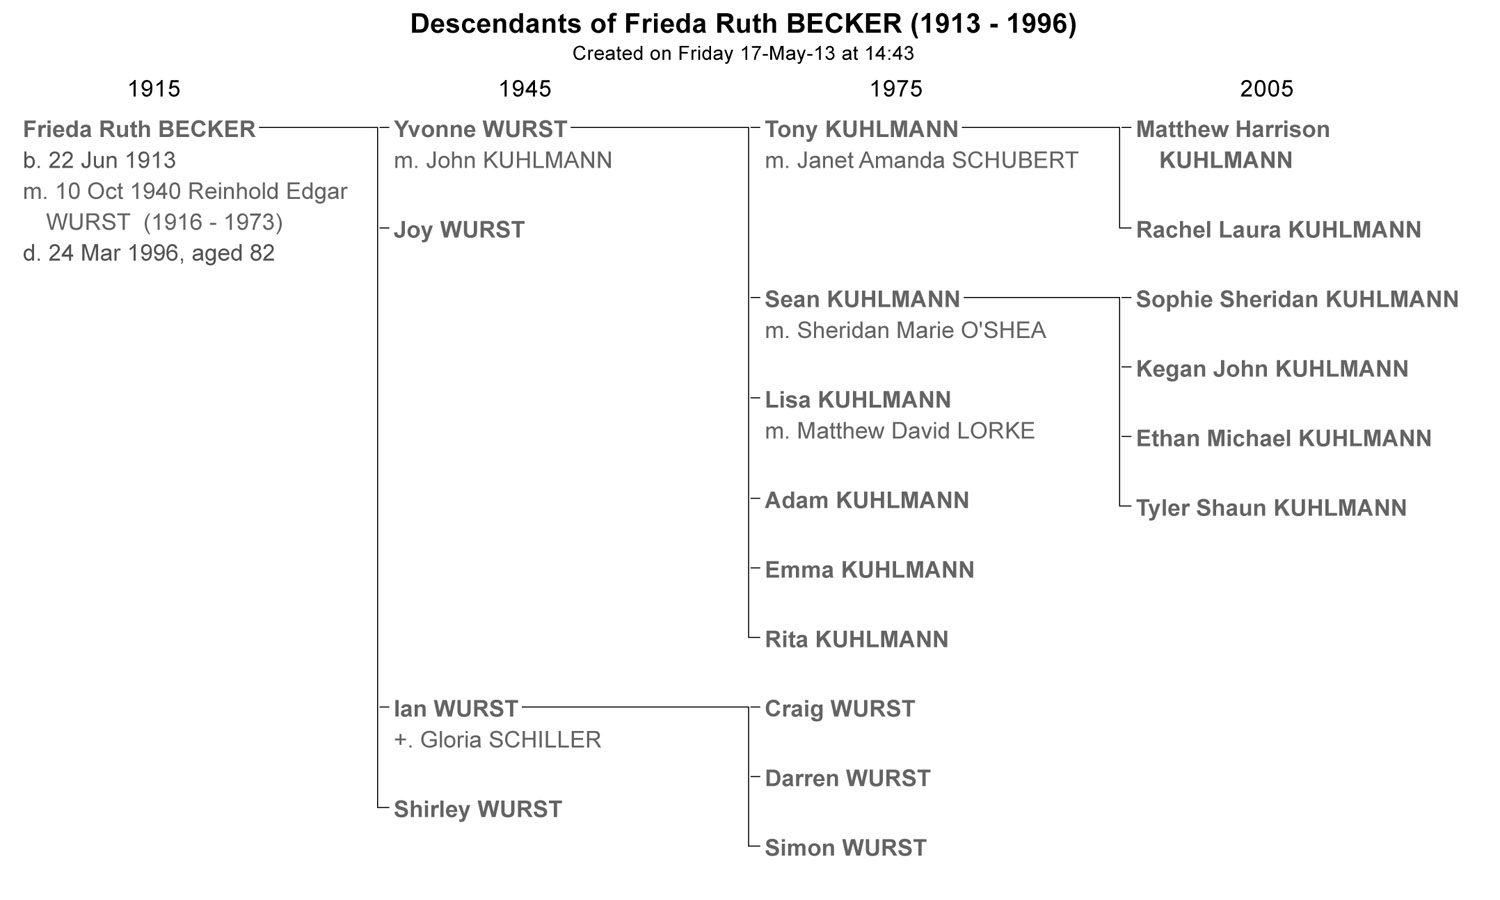 Descendants_of_Frieda_Ruth_BECKER_cr_May_2013_